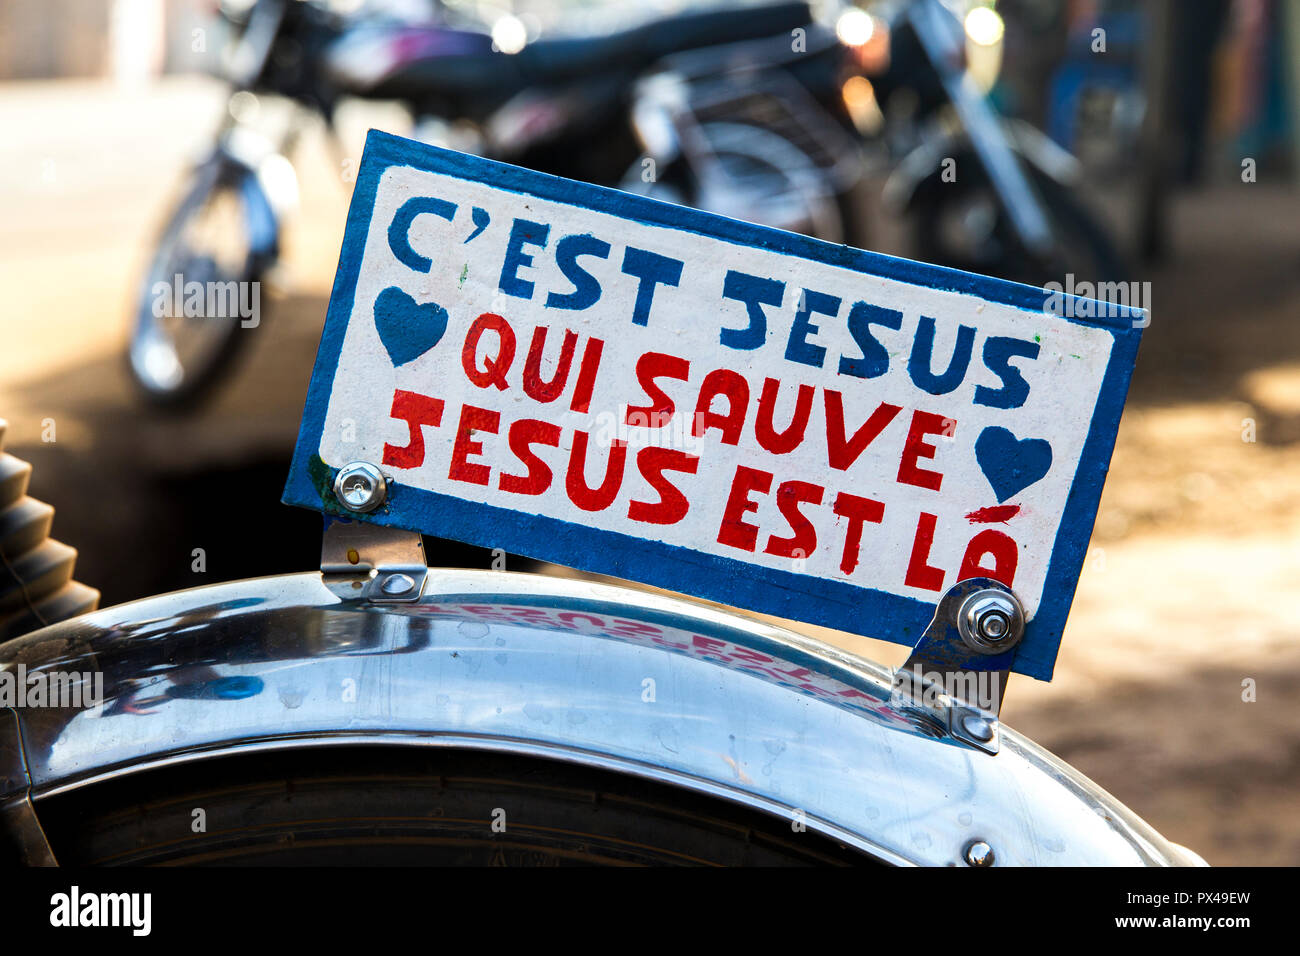 Evangelical message on a motorcycle in Dapaong, Togo. Stock Photo